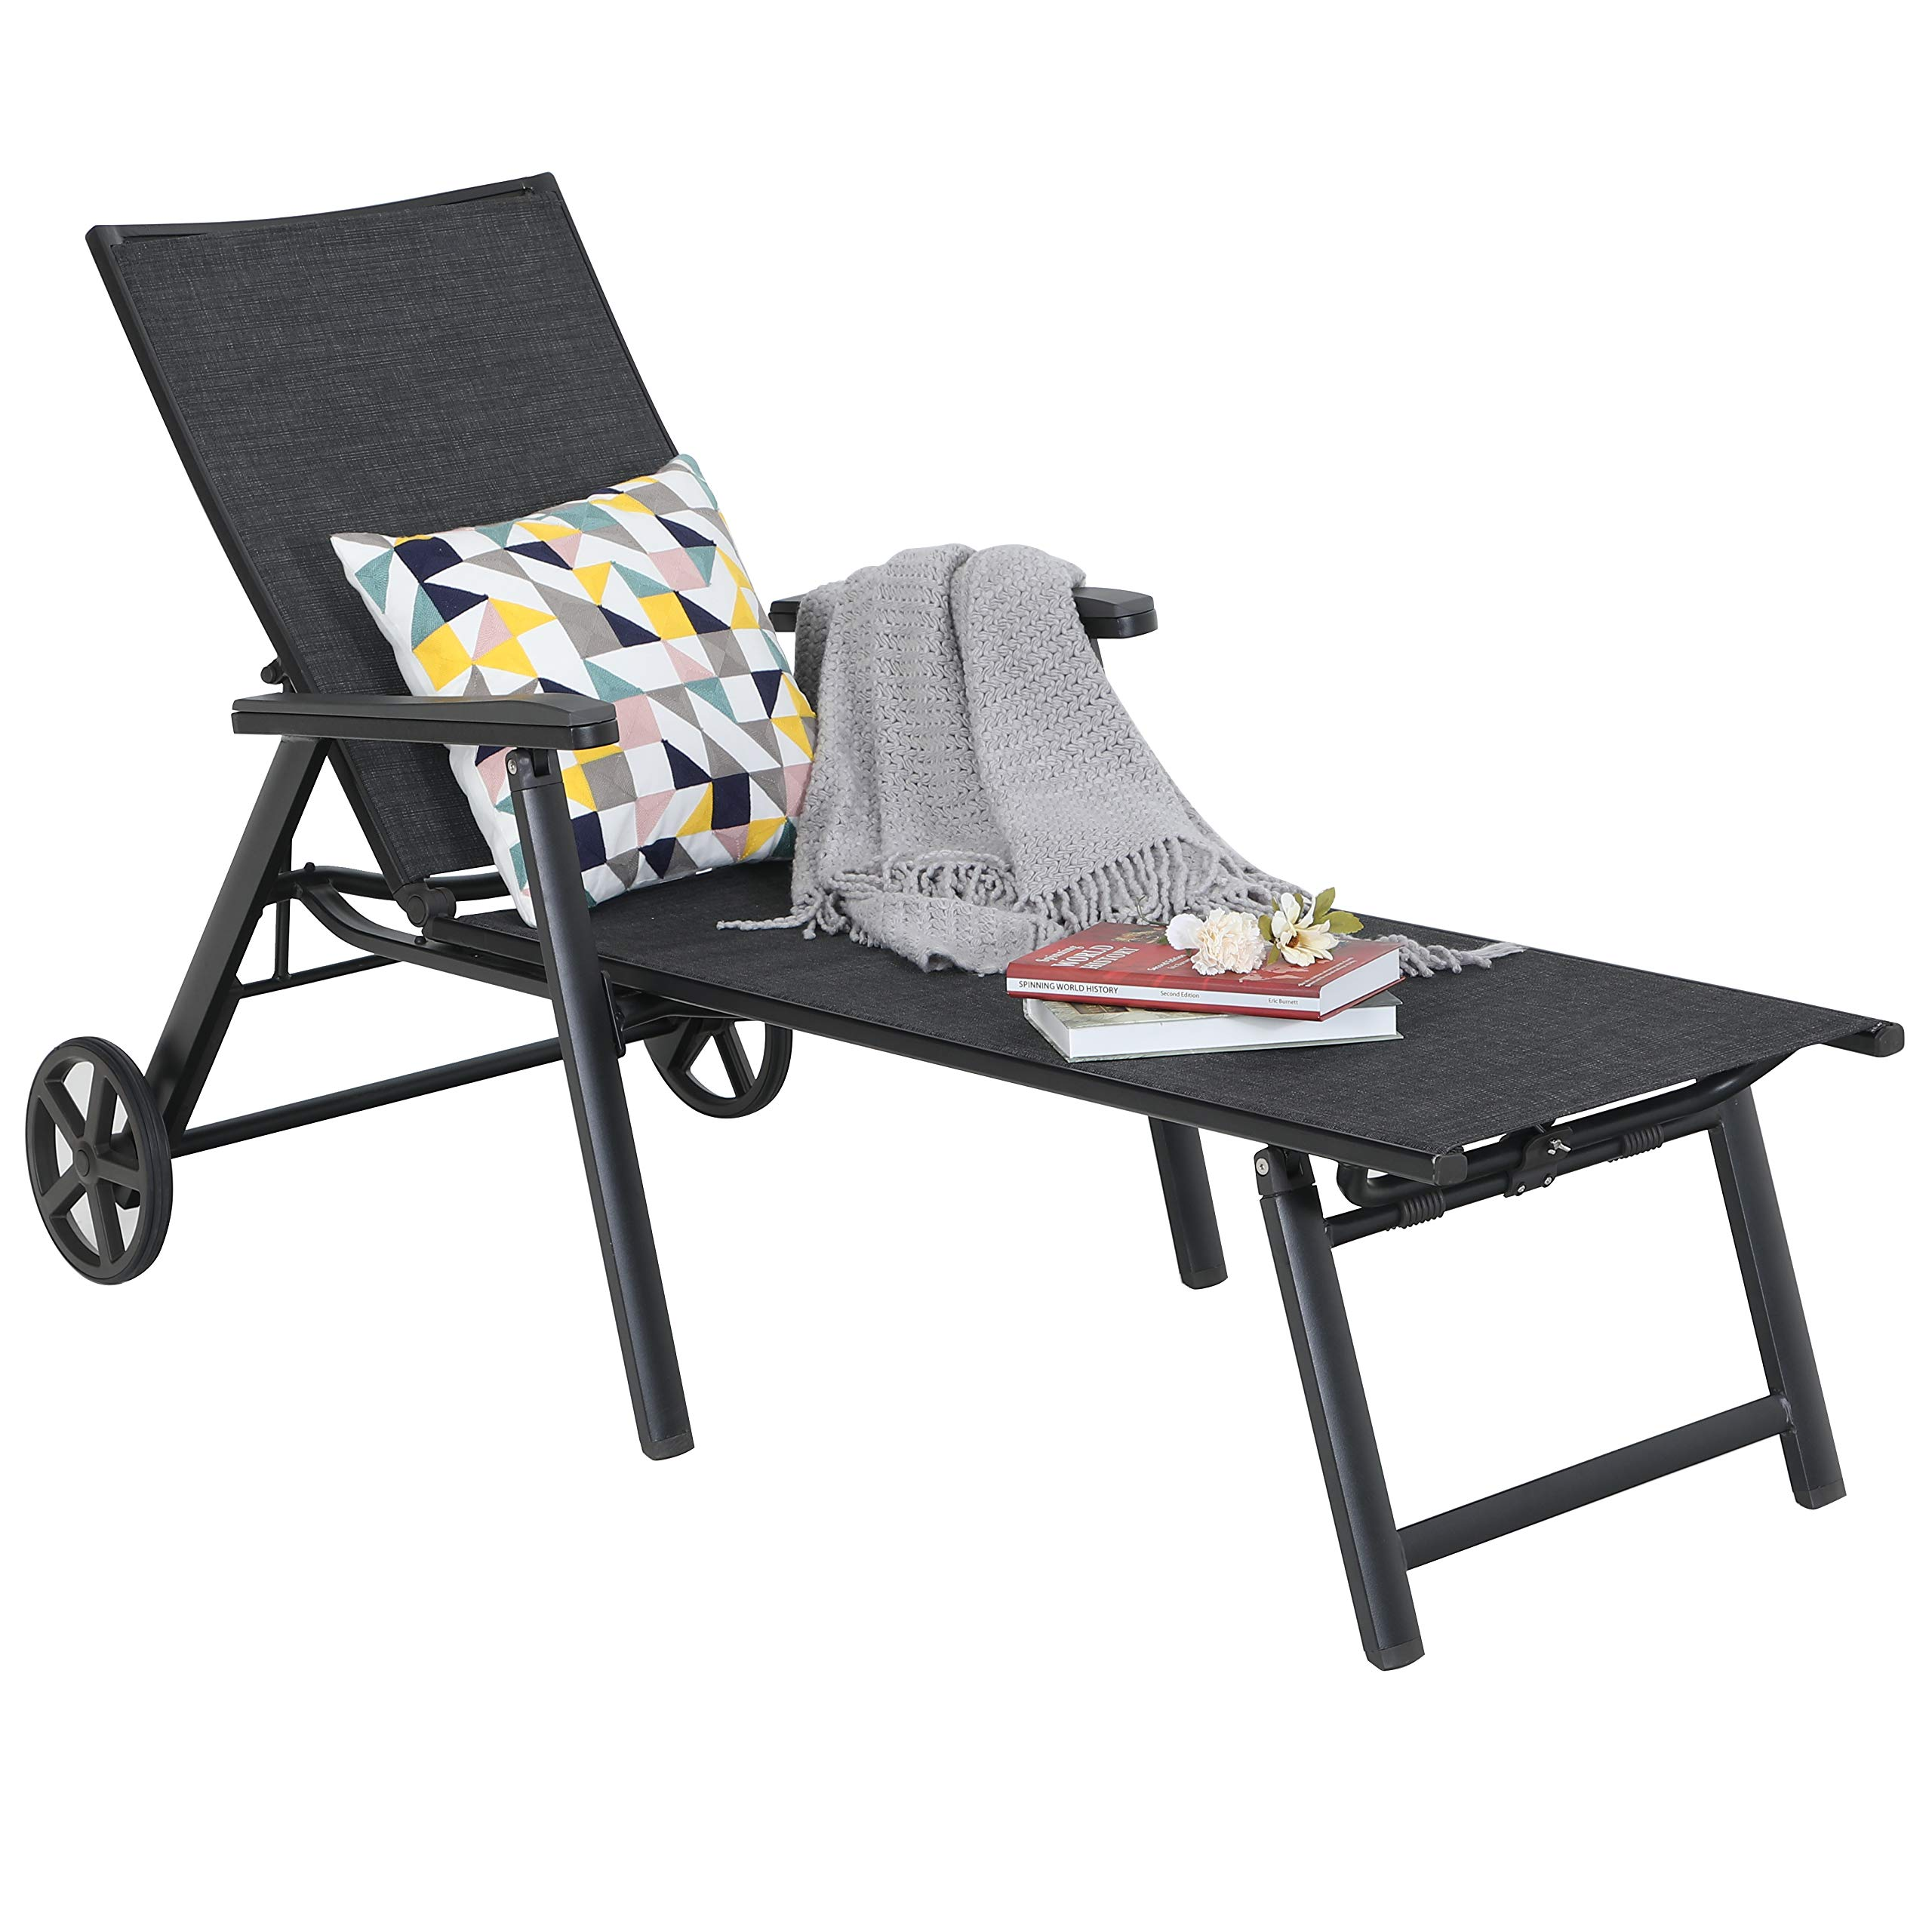 Chaise Lounge Chair Pool Recliner 5-Position Adjustable for Garden Yard Portable with Wheels Breathable Textiline Steel Frame Outdoor Patio Chair Black by MF